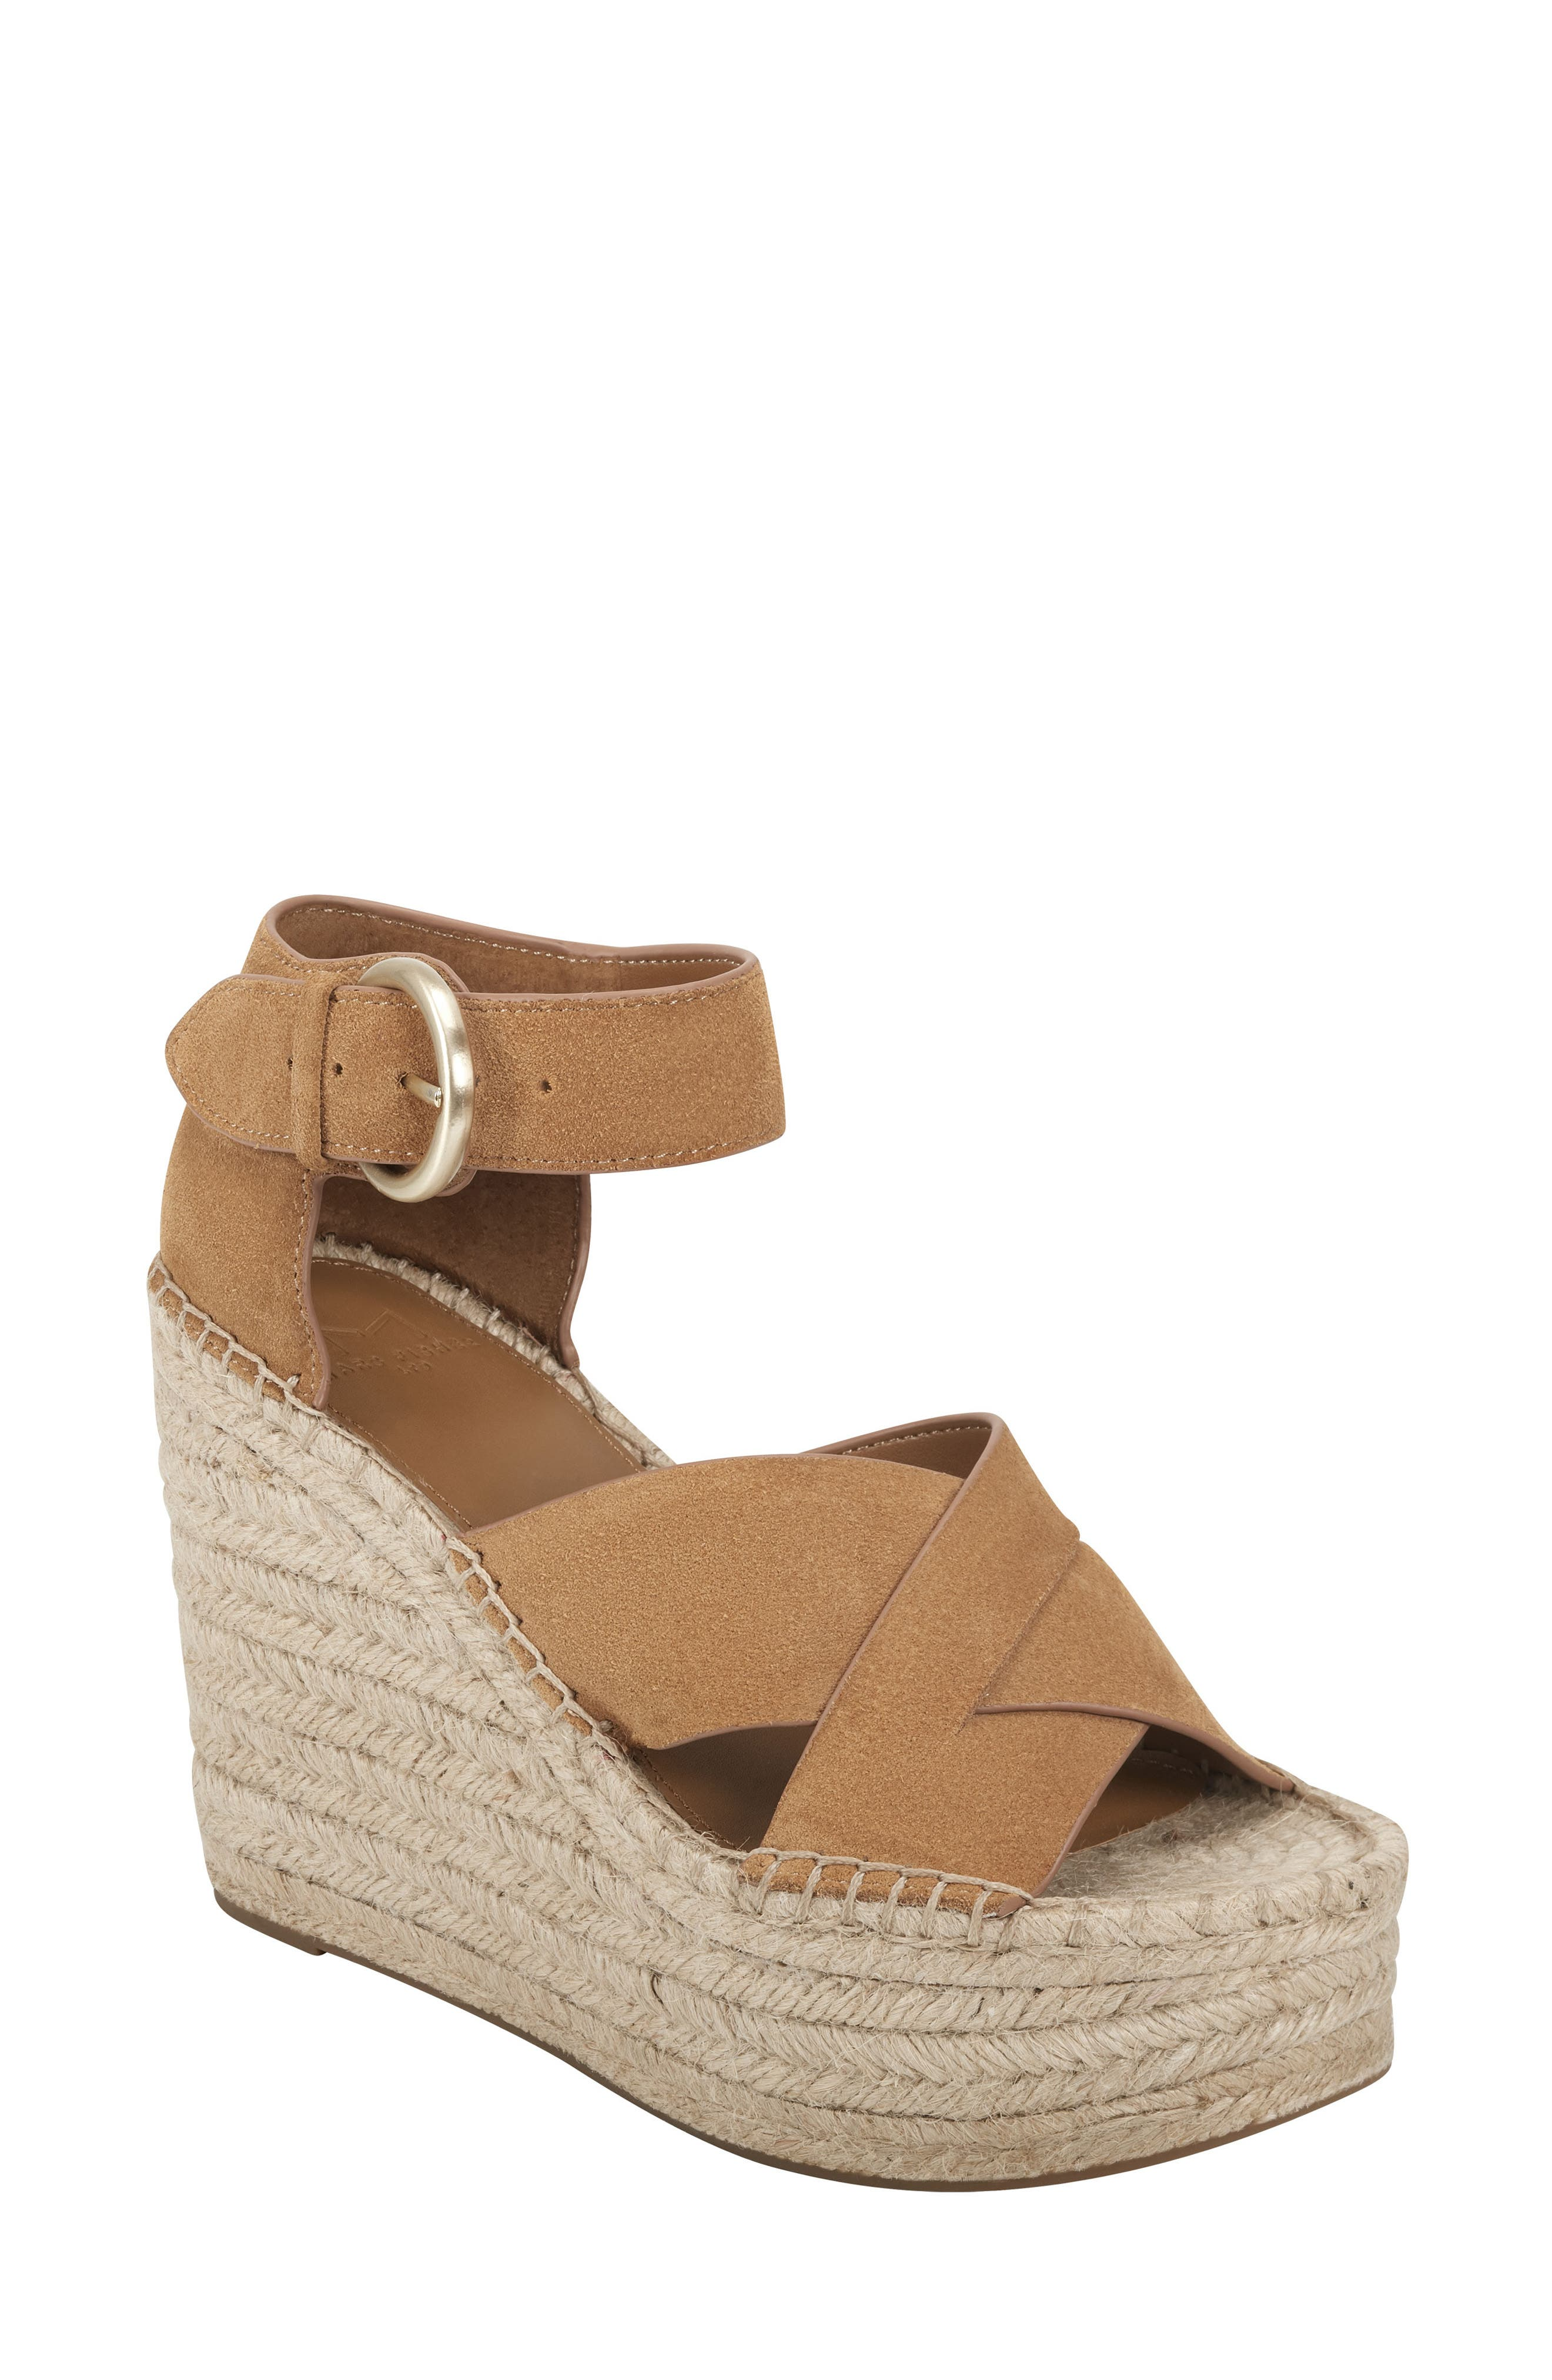 Image of Marc Fisher LTD Amari Ankle Strap Espadrille Wedge